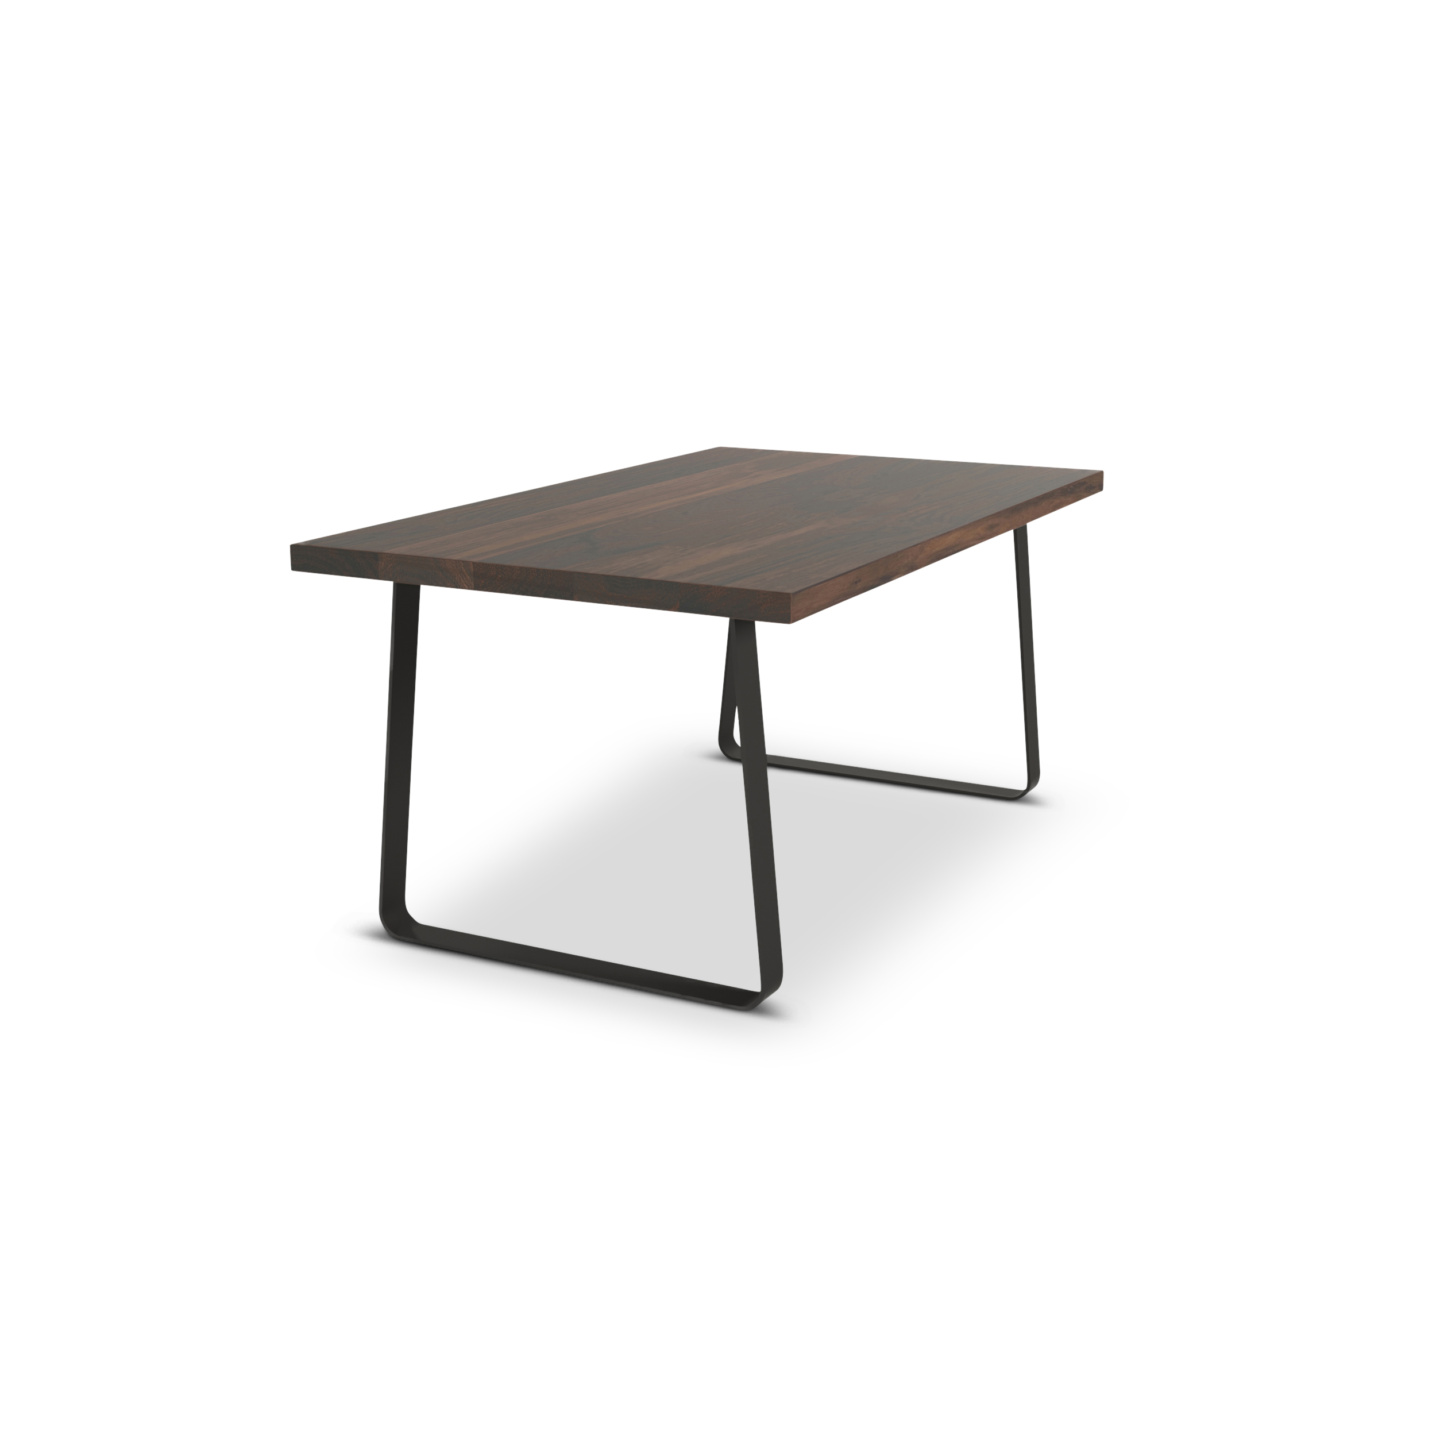 66 inch long modern dining room table with walnut top